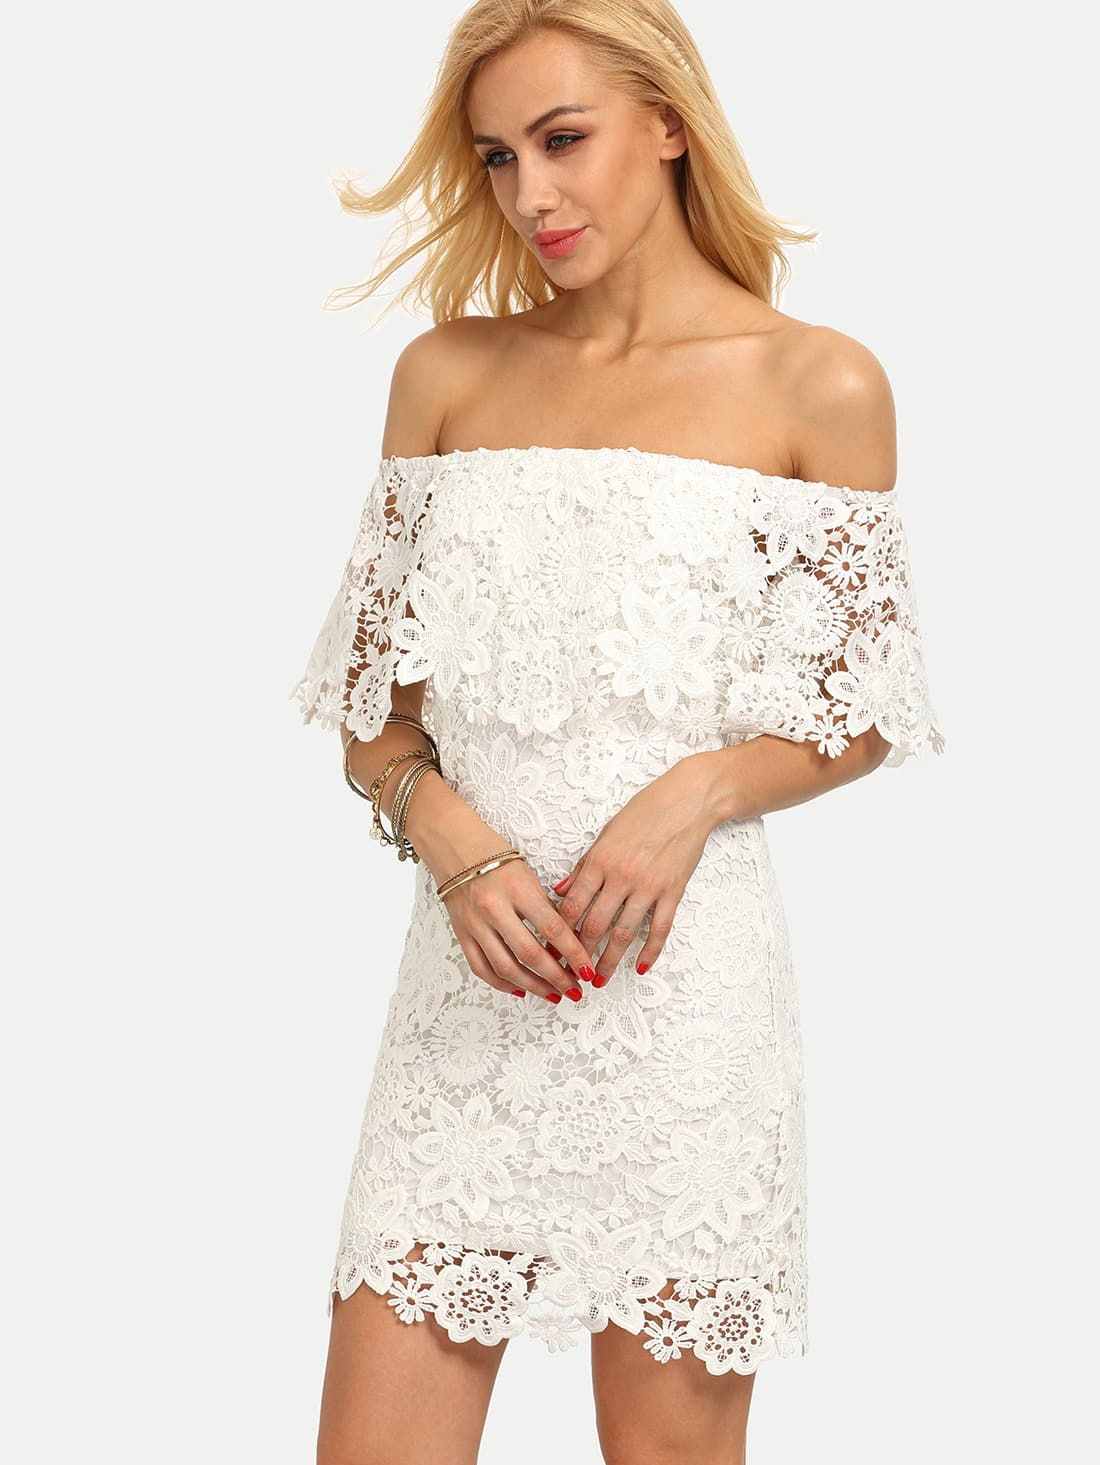 White Off The Shoulder Backless Bodycon Dress -SheIn(Sheinside)